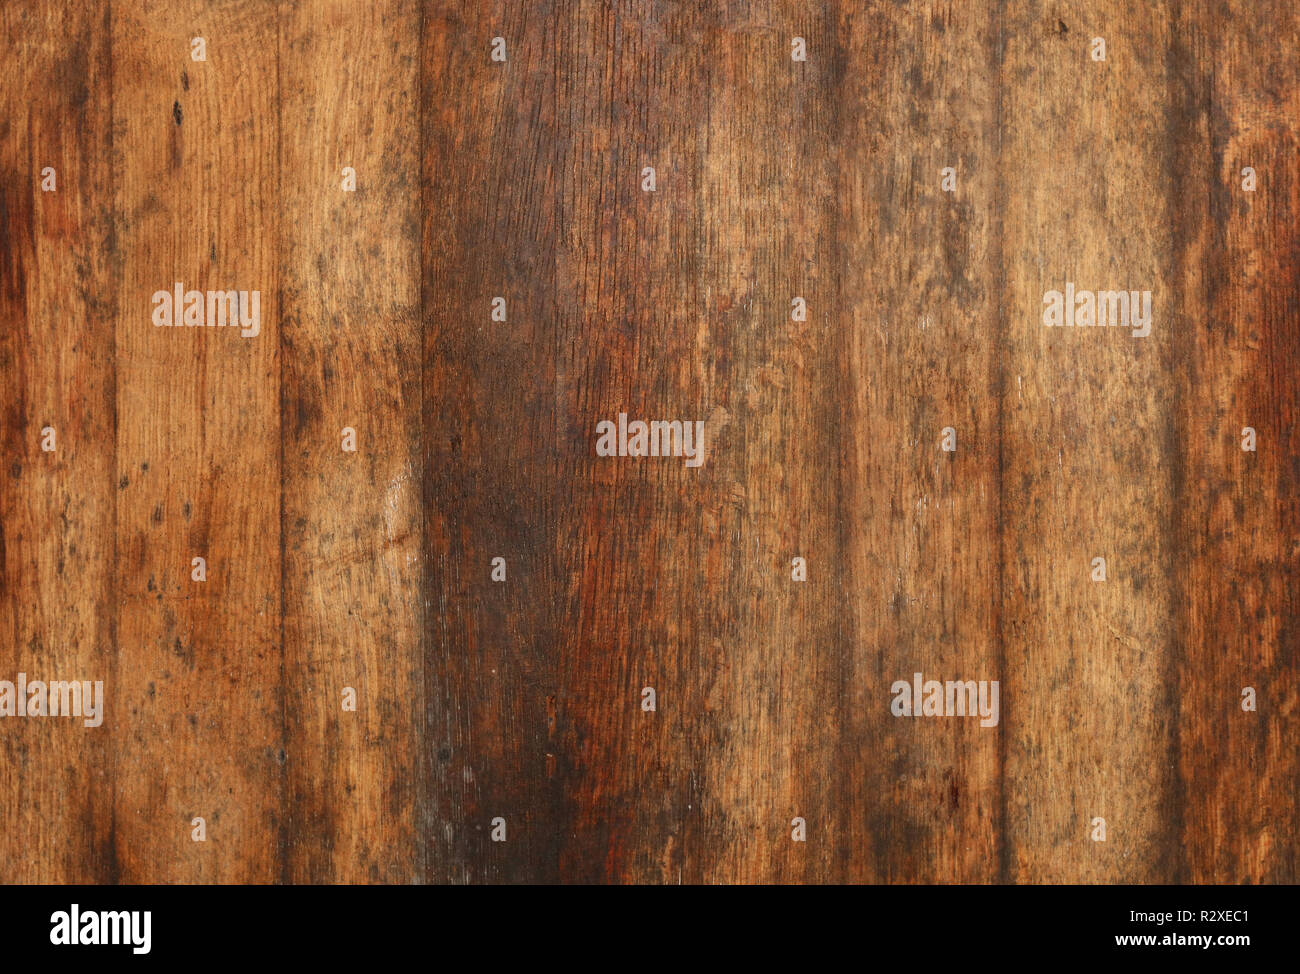 Vintage Brown Barrel Wooden Planks Background Texture With Scratches